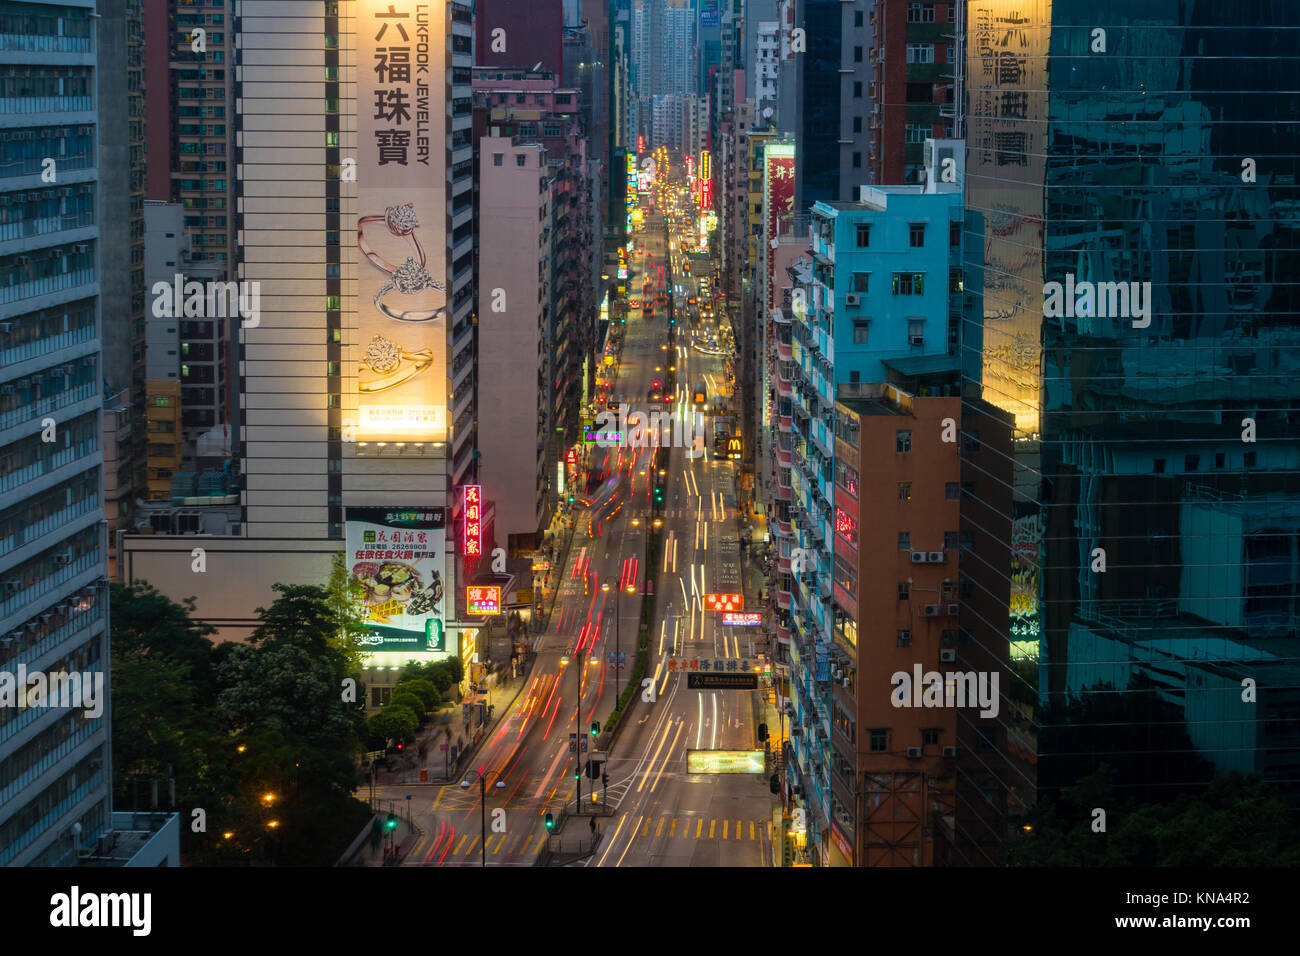 Traffic in a busy street in Hong Kong - Stock Image